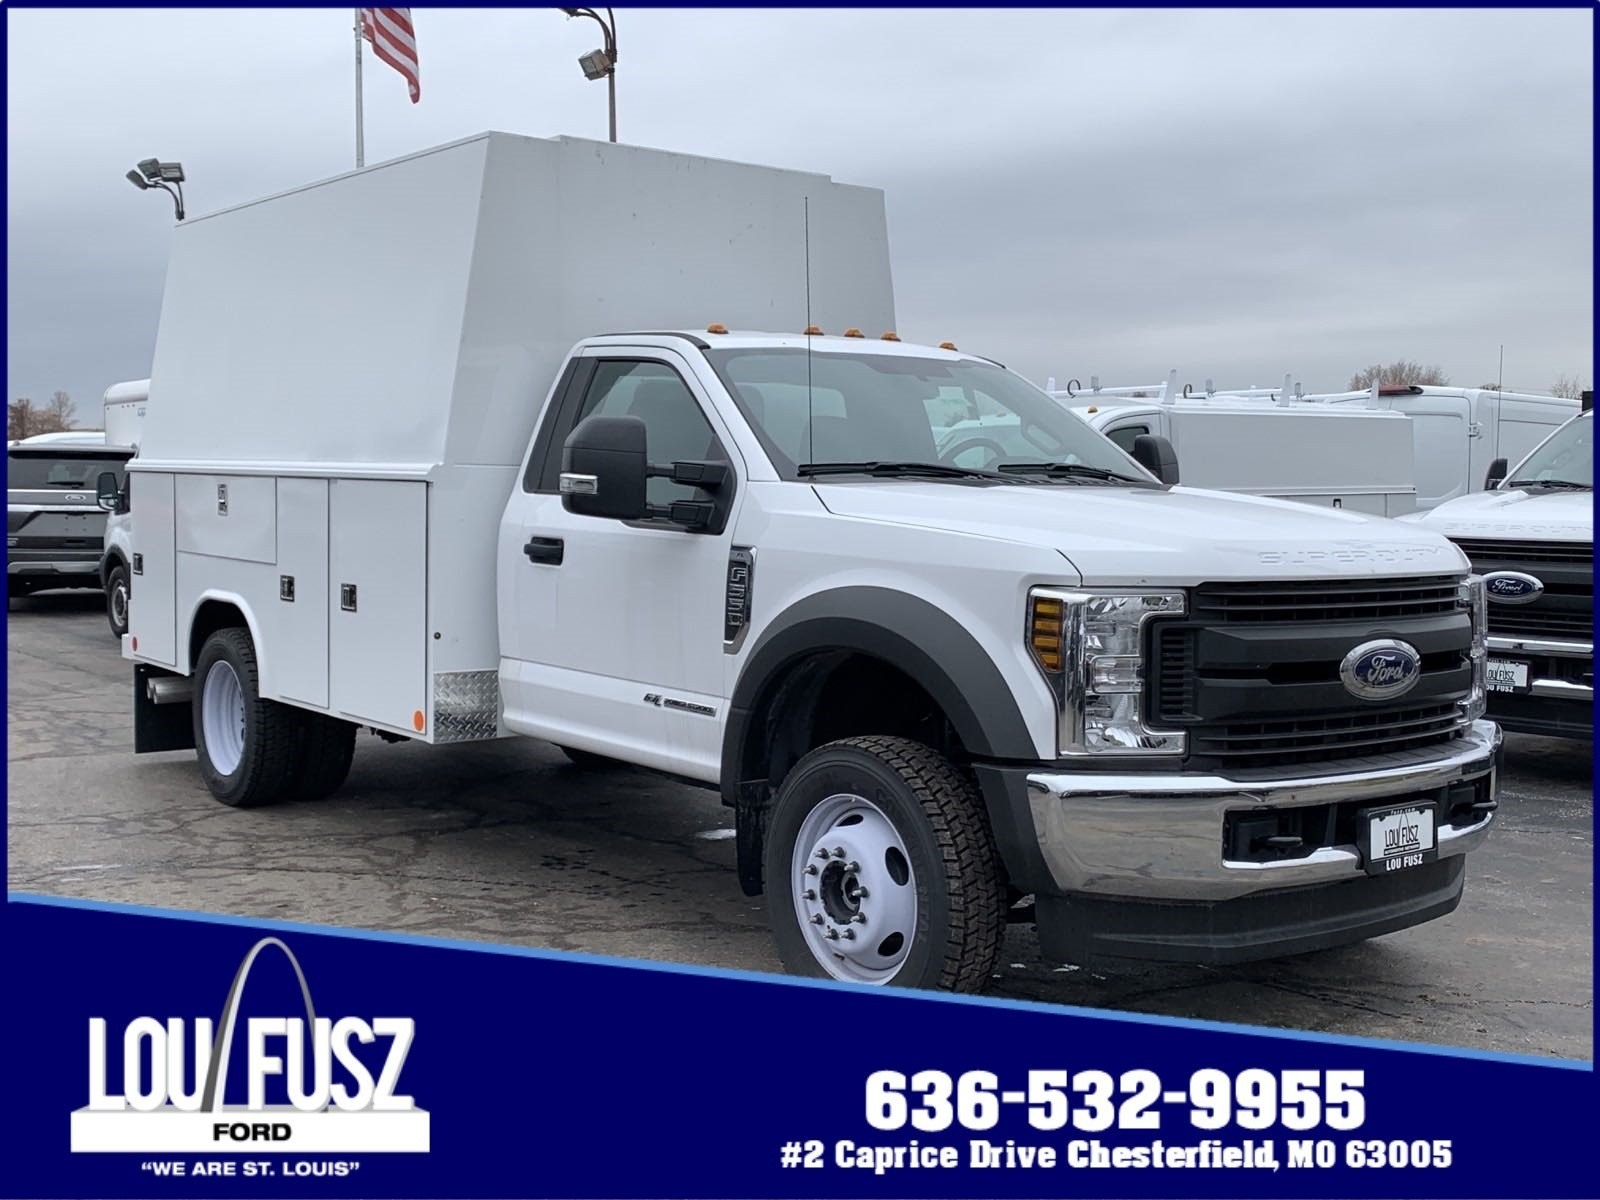 2011 ford F250 Upfitter Wiring New 2019 ford Super Duty F 550 Drw Xl 4wd Service Truck Of 2011 ford F250 Upfitter Wiring